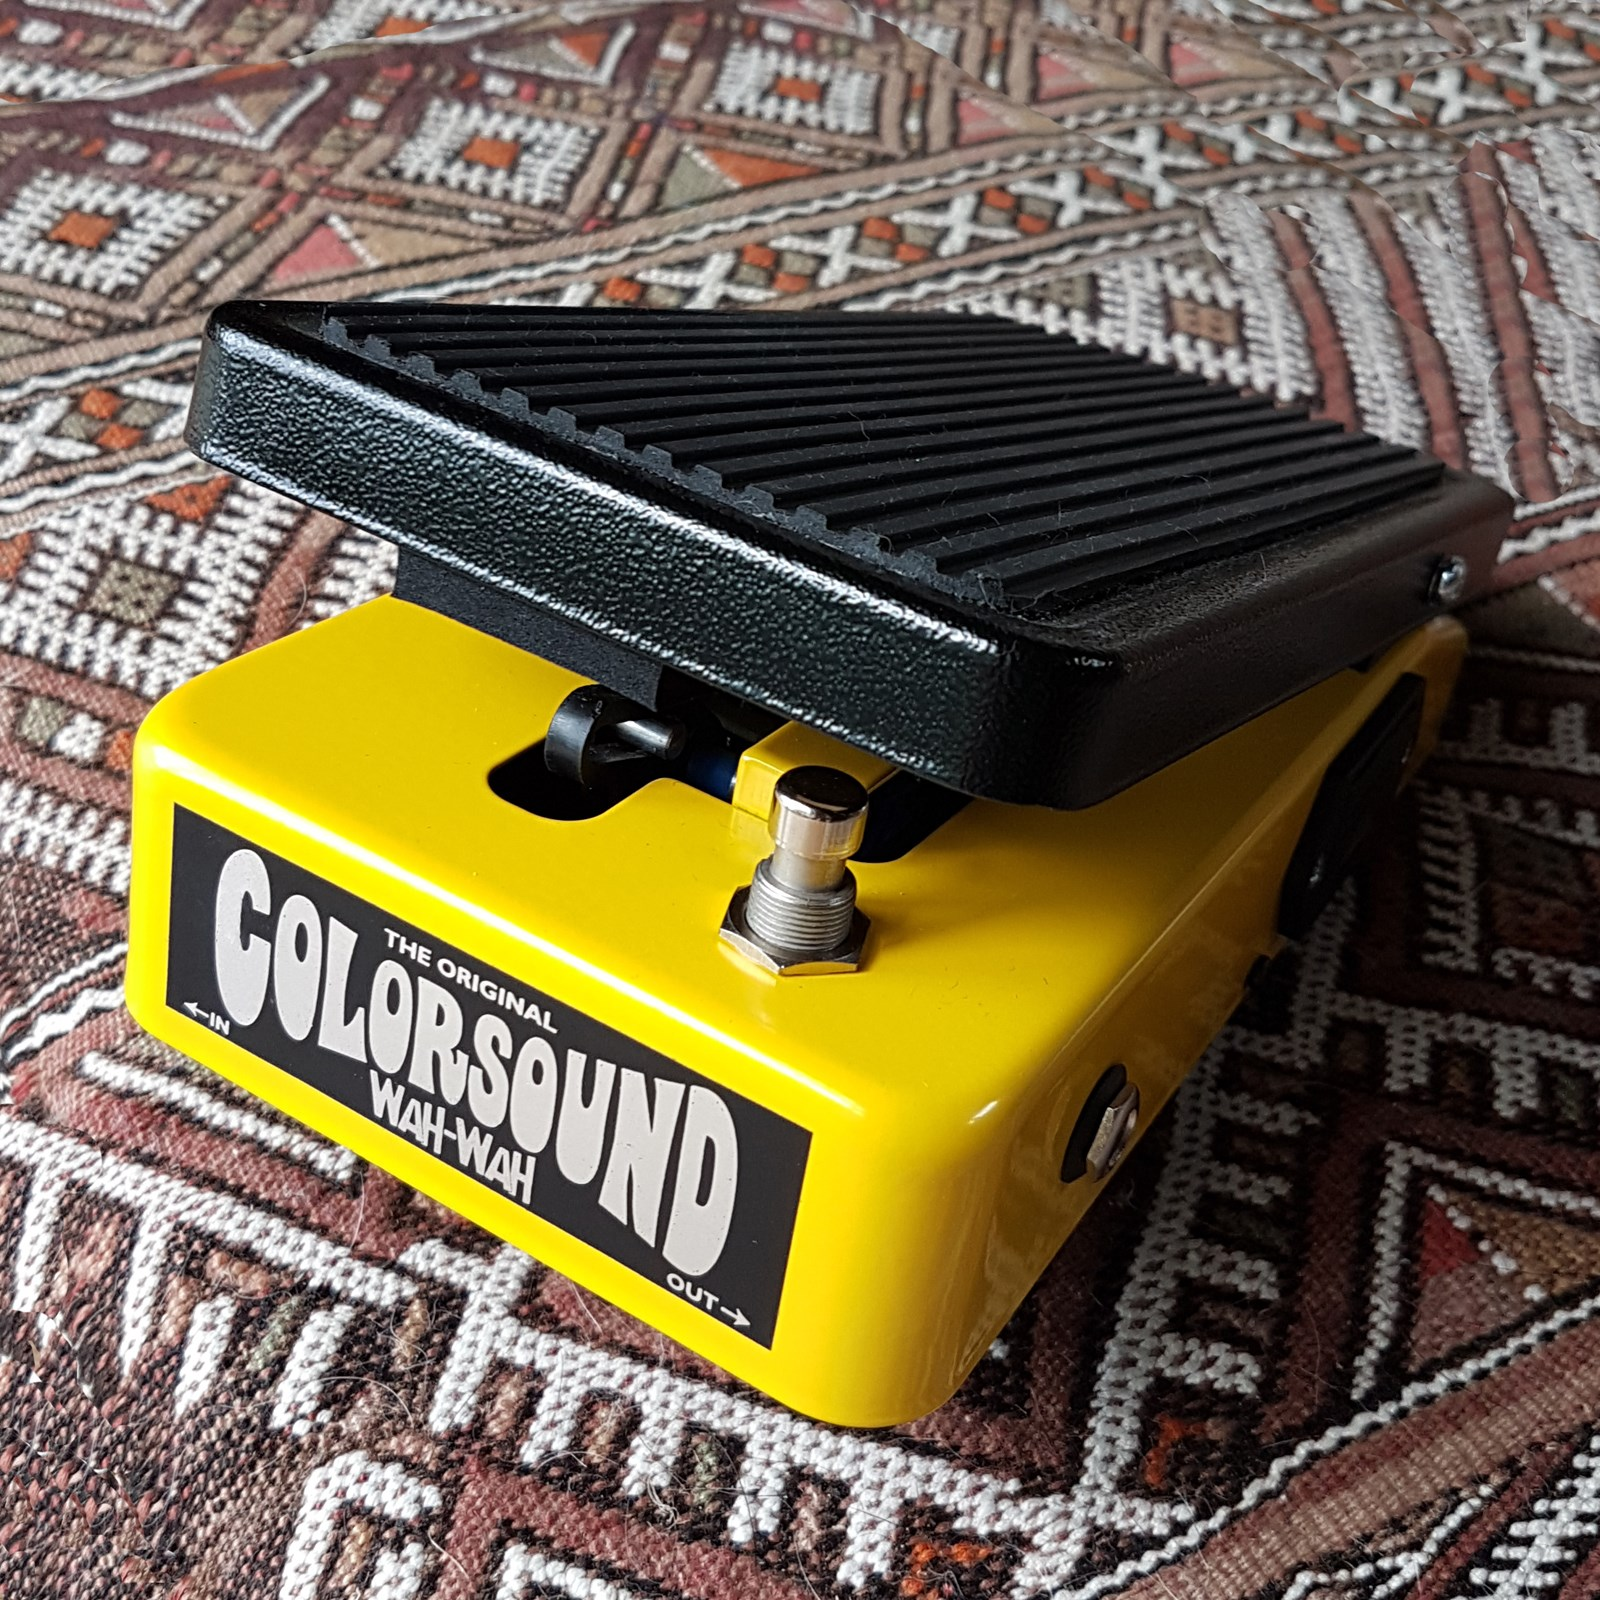 The Inductorless Wah-Wah by jake rothman